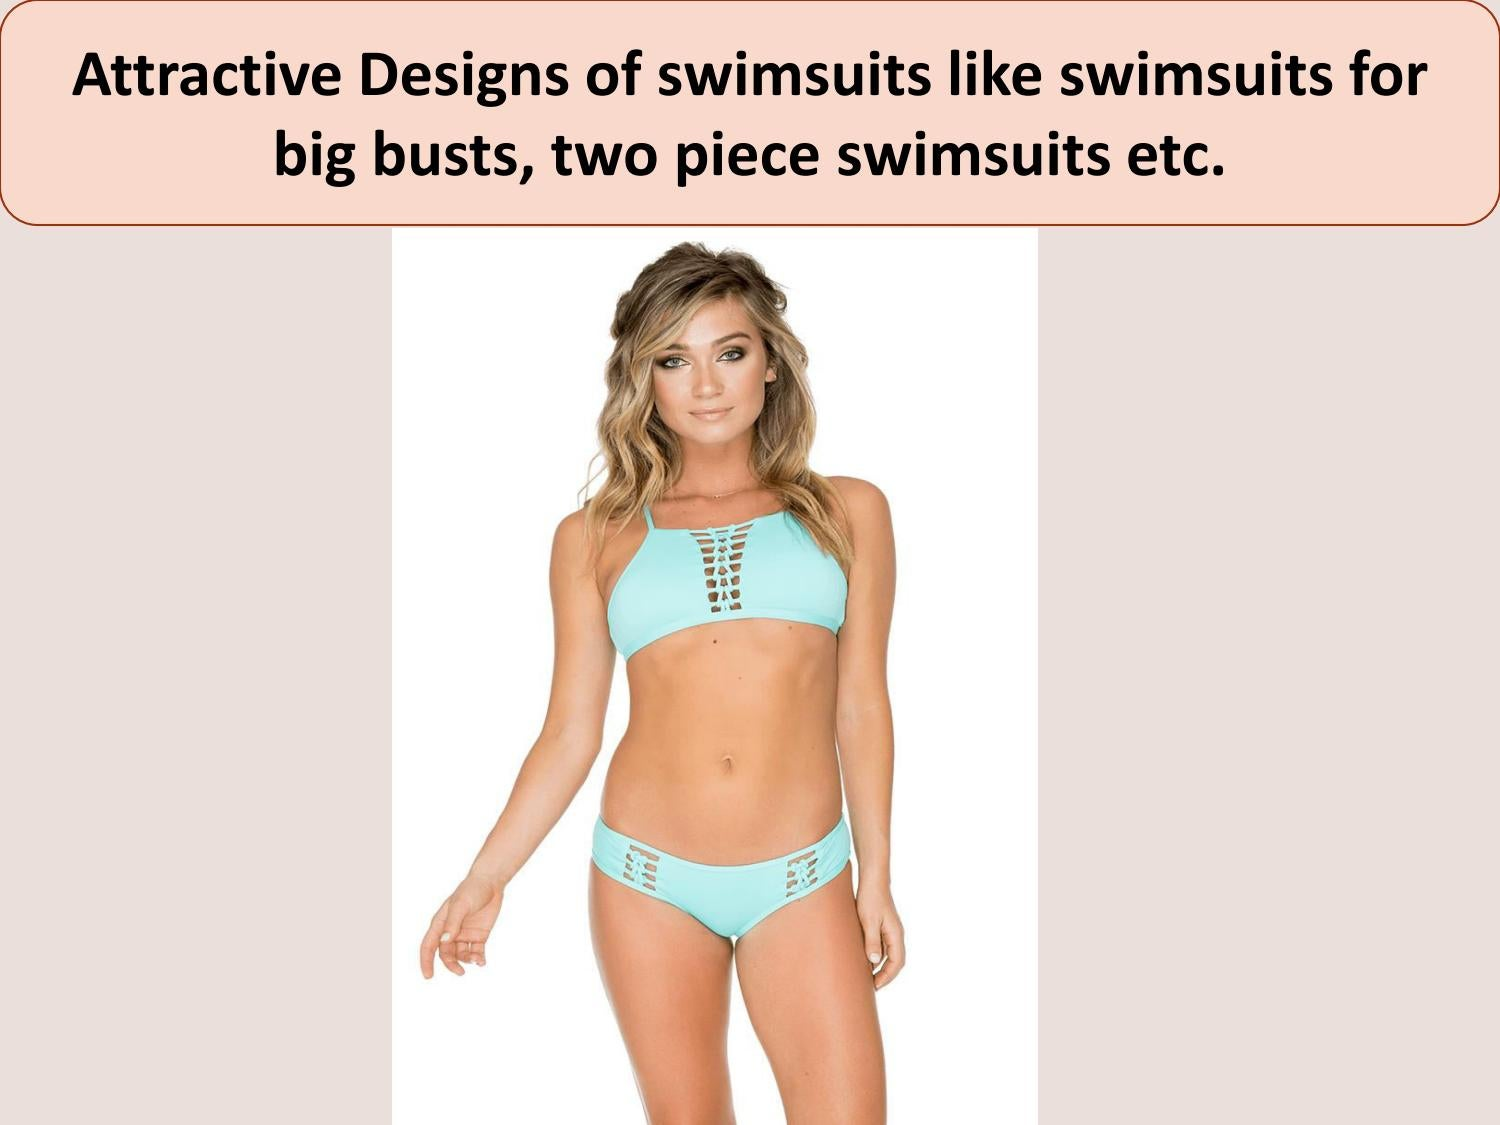 6793c80b929f6 Attractive Designs of swimsuits like swimsuits for big busts, two piece  swimsuits etc.